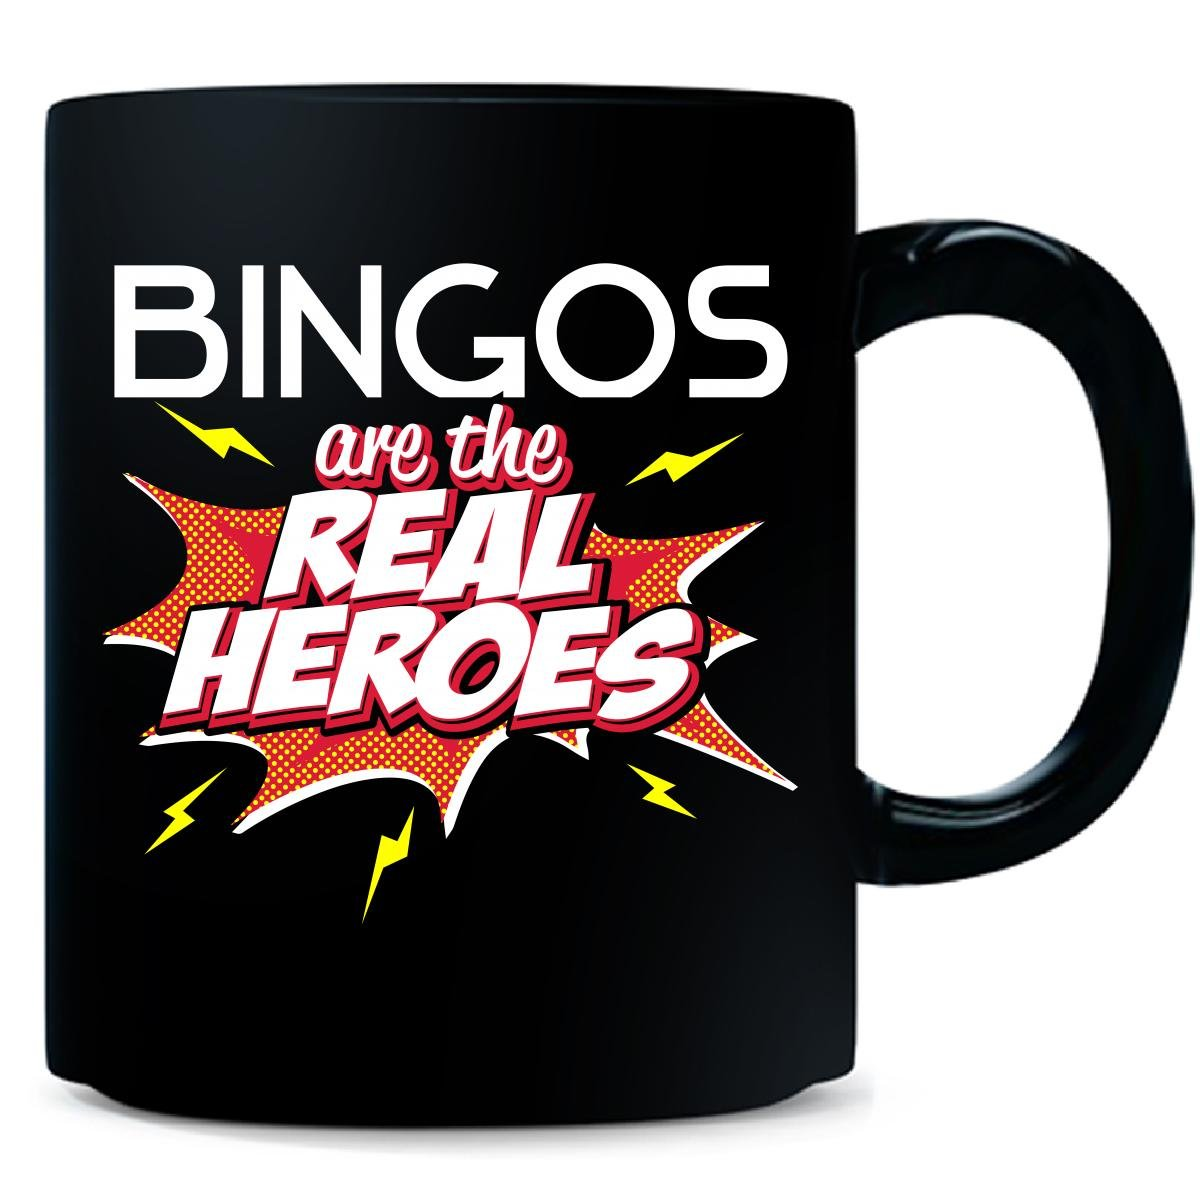 Bingos Are The Real Heroes Cute Gift For Grandmother - Mug by My Family Tee